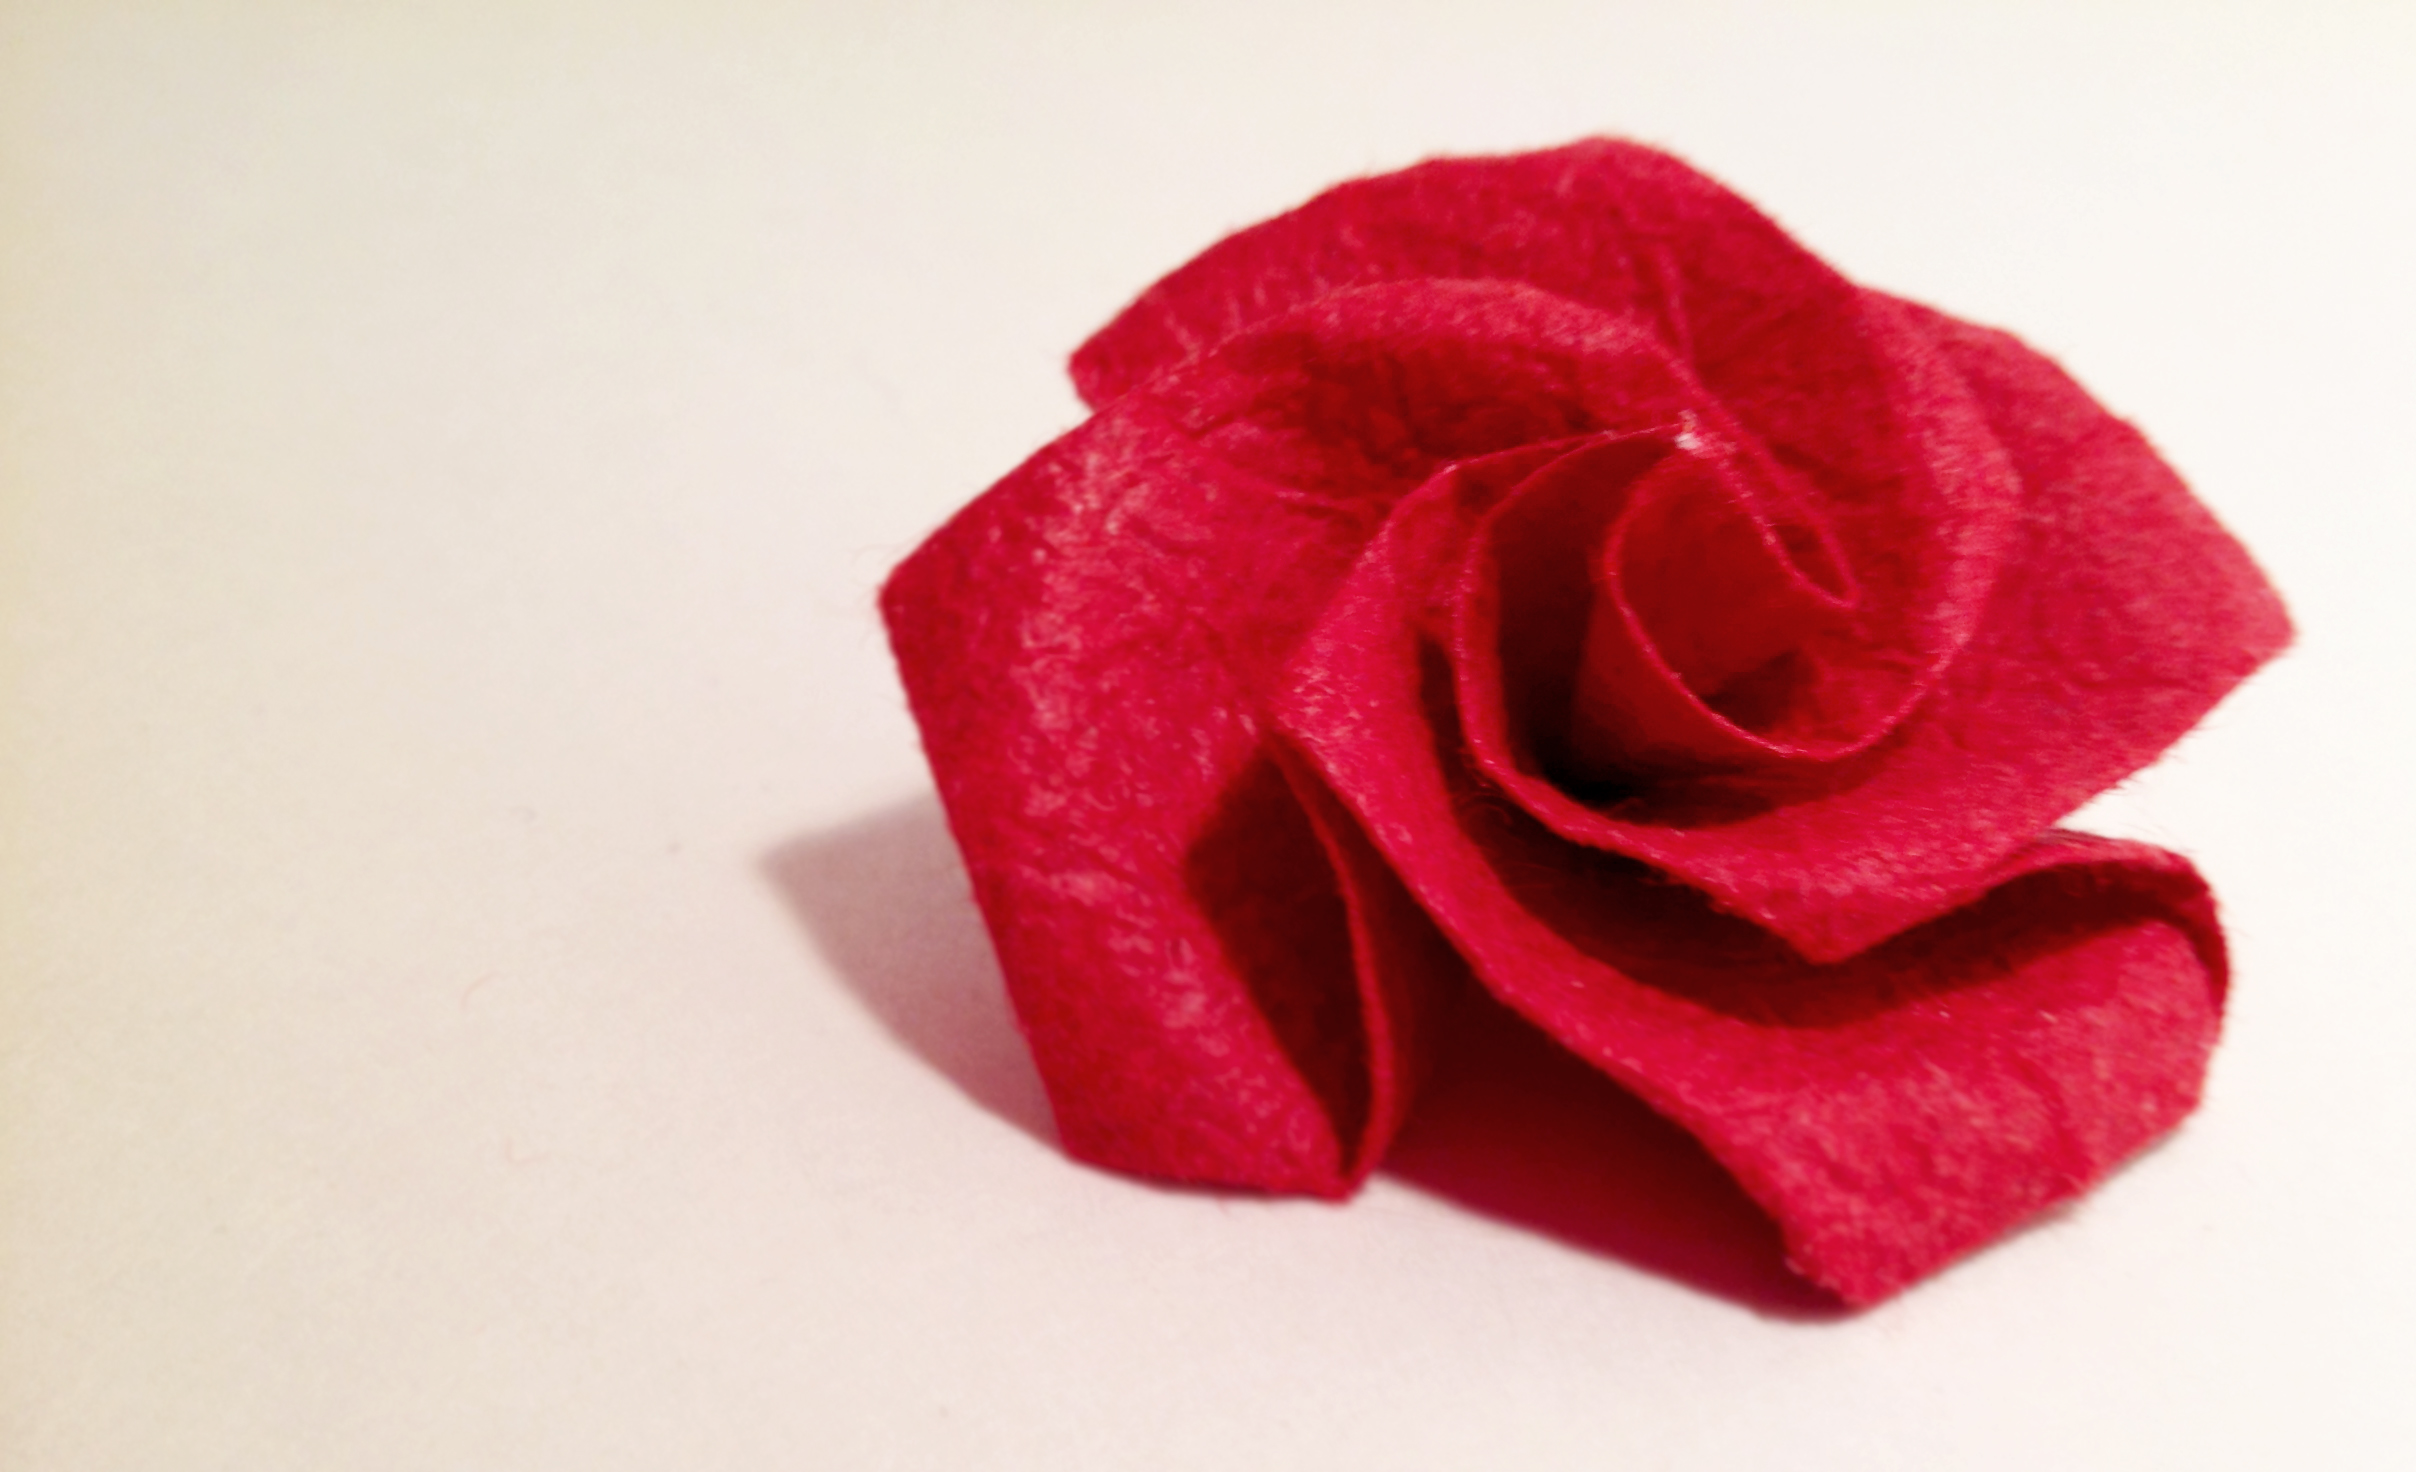 Origami rose by Carrie Gates